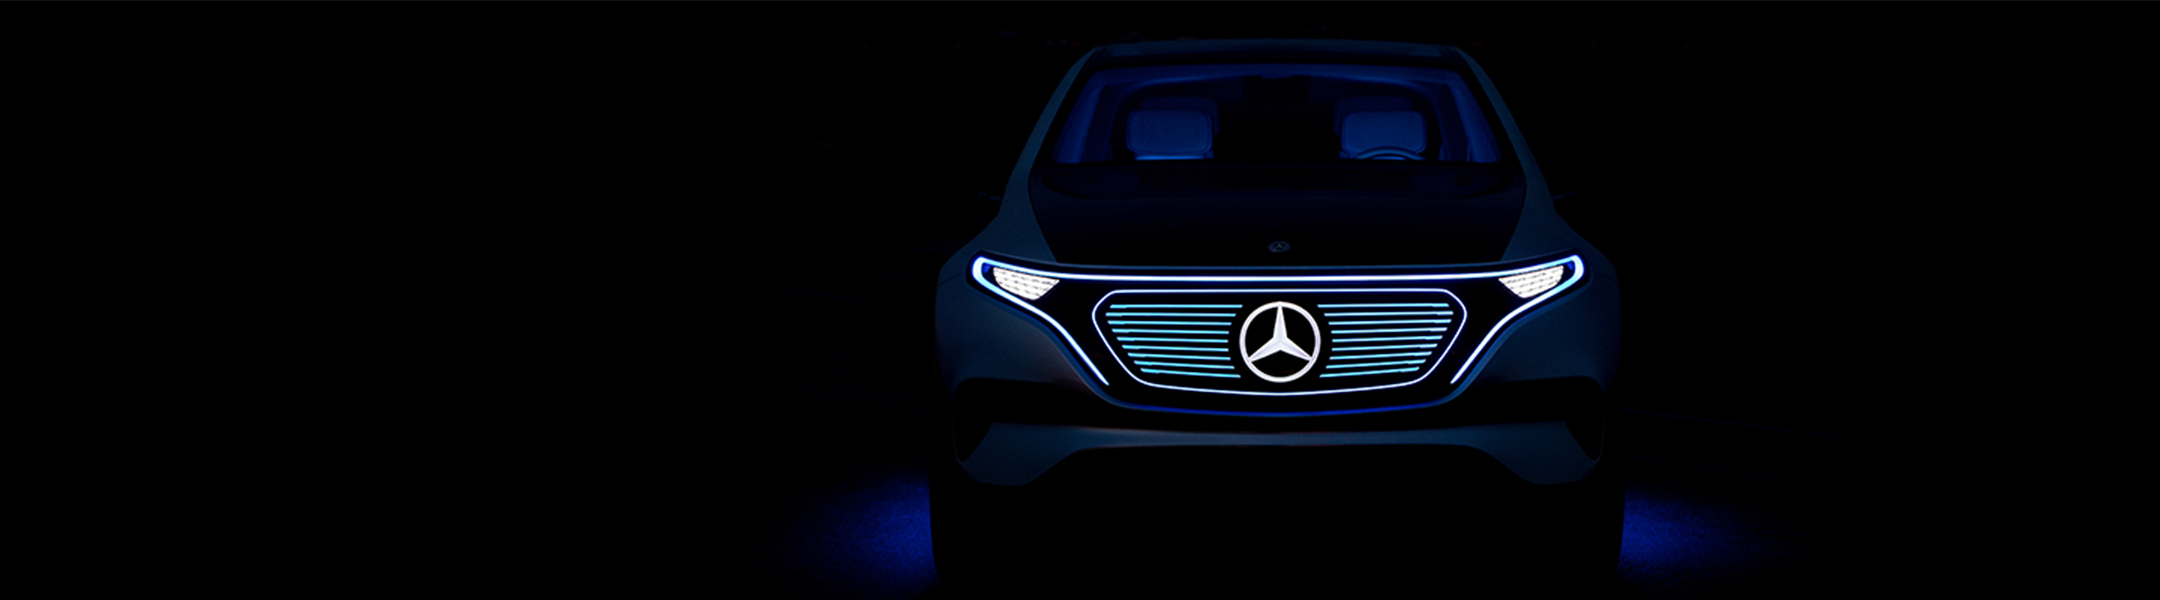 The front-end of a Mercedes-Benz Electric Intelligence concept car in the dark, with the grill, headlights and three-pointed star illuminated.